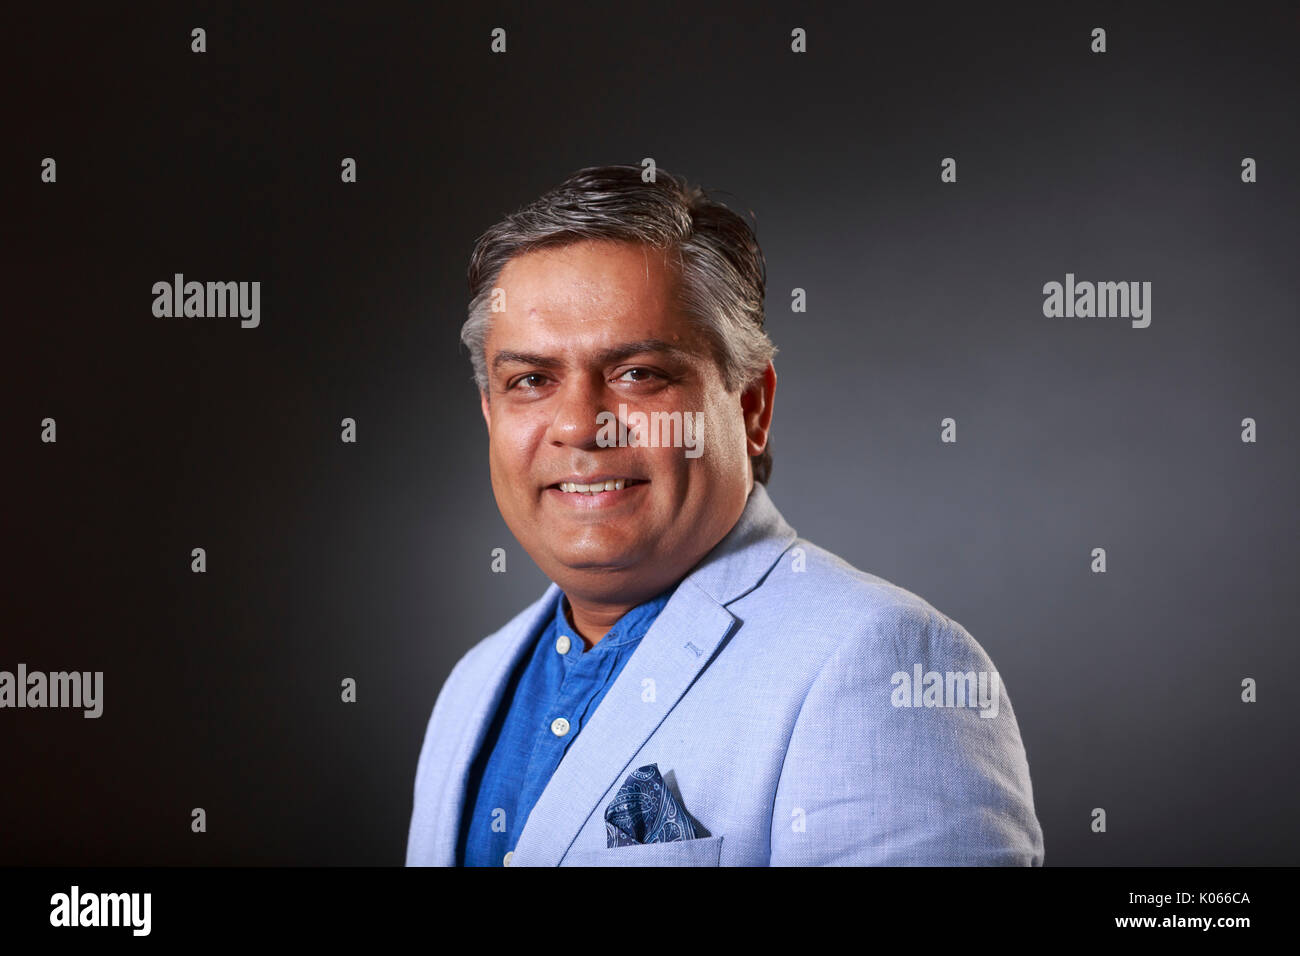 Edinburgh, Scotland, UK. 21st Aug, 2017. Day 10 Edinburgh International Book Festival. Pictured: Vivek Singh, London-based Indian chef, restaurateur, and media personality known for his innovative take on Indian cuisine. Credit: Pako Mera/Alamy Live News - Stock Image